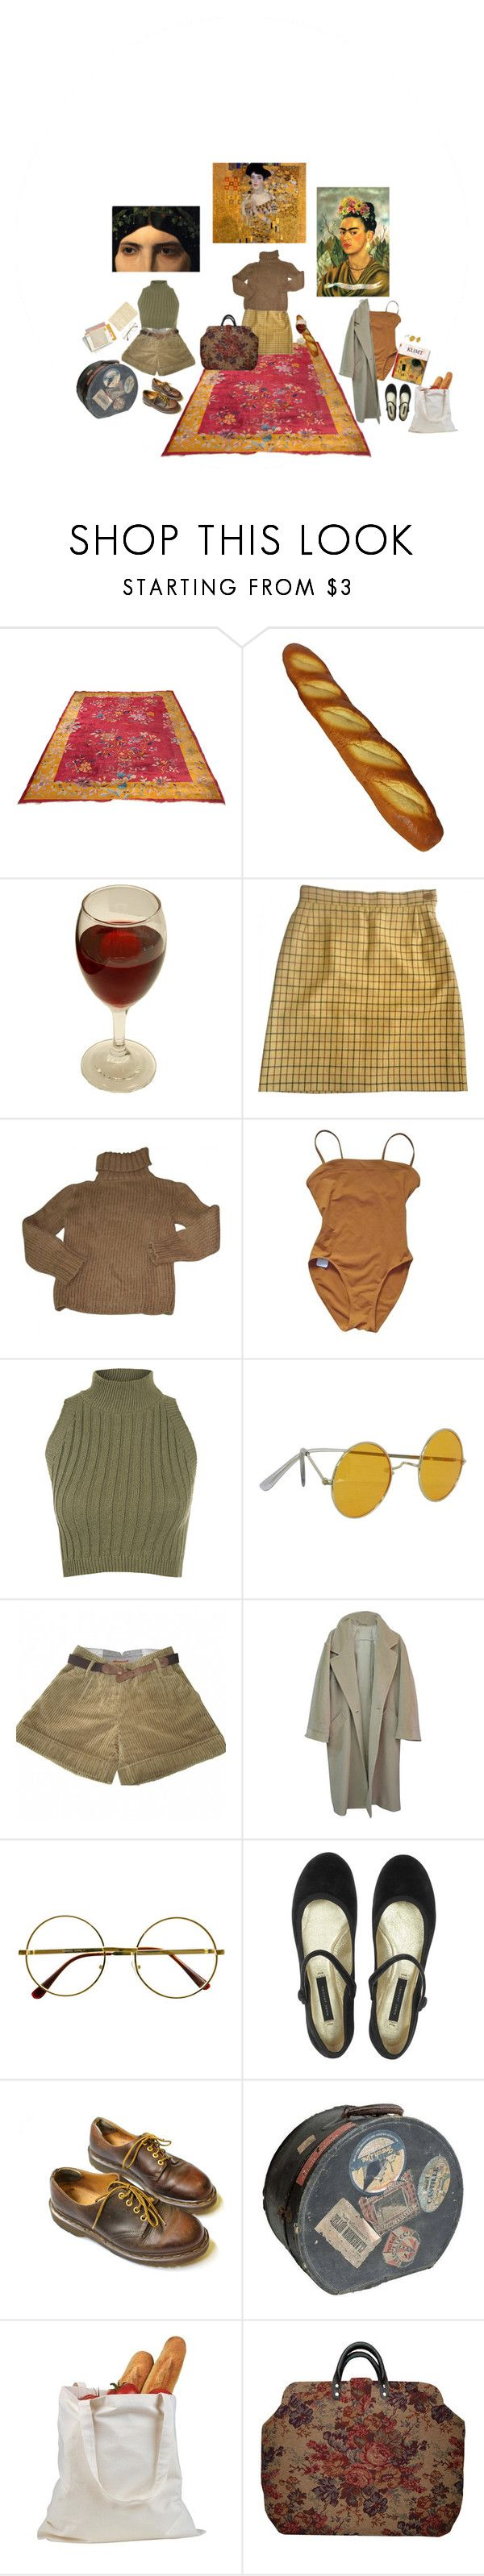 """""""art hoes"""" by the-lonely-wallflower ❤ liked on Polyvore featuring Vivienne Westwood, Isabel Marant, Eres, Taschen, WearAll, Sessùn, MaxMara, Retrò, Marc Jacobs and Dr. Martens"""